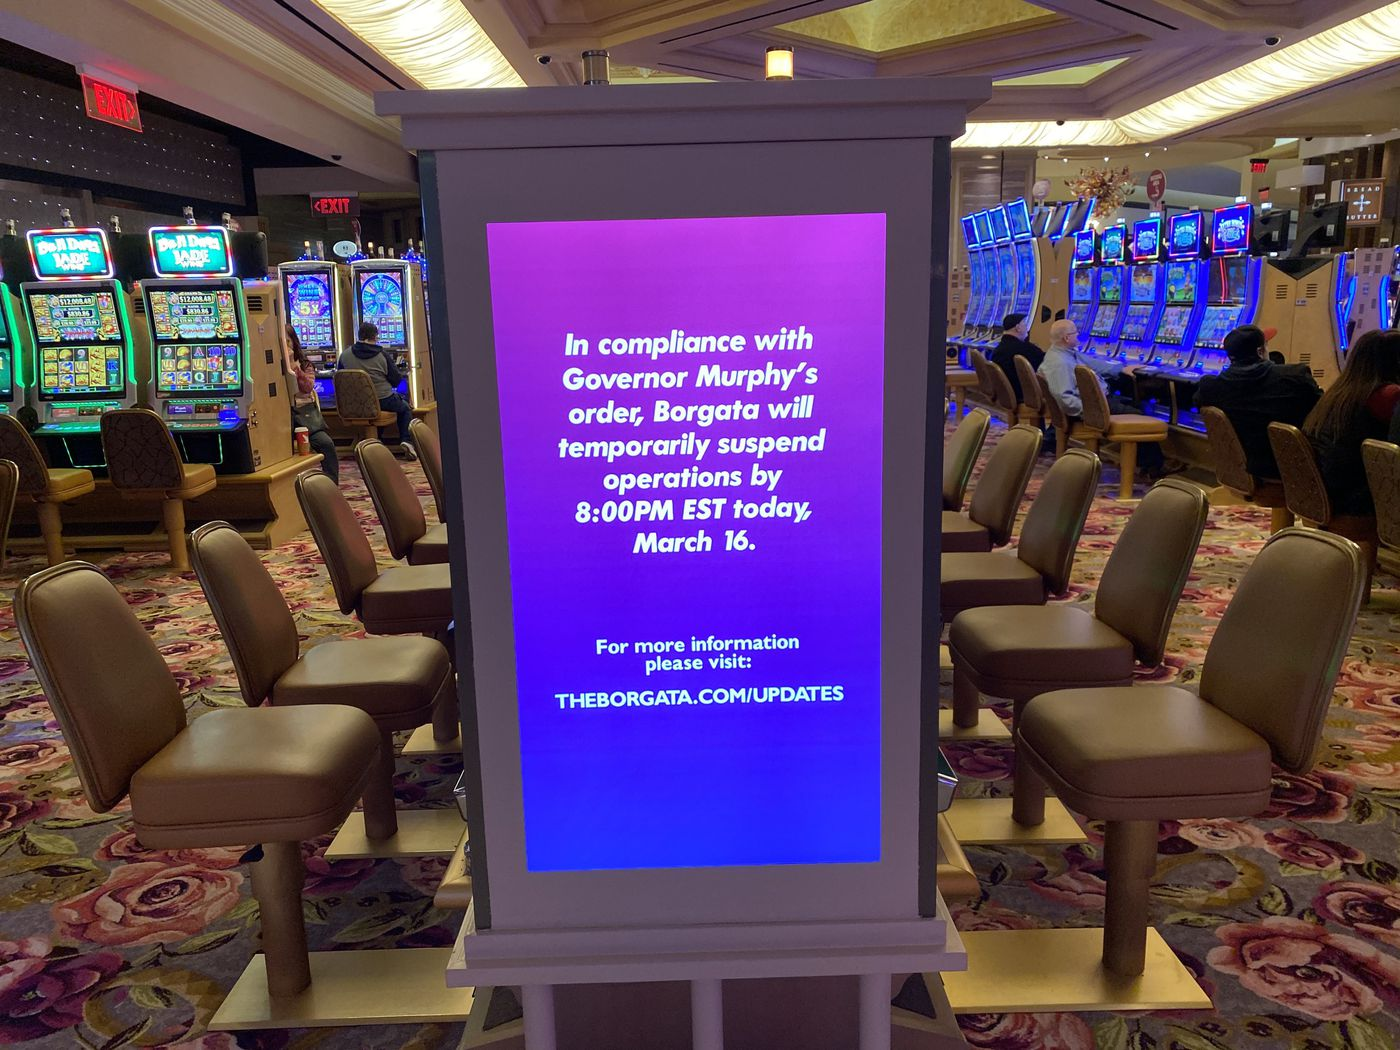 At Borgata Hotel and Casino in Atlantic City, the casino floor was emptying out as displays told of the shutdown.